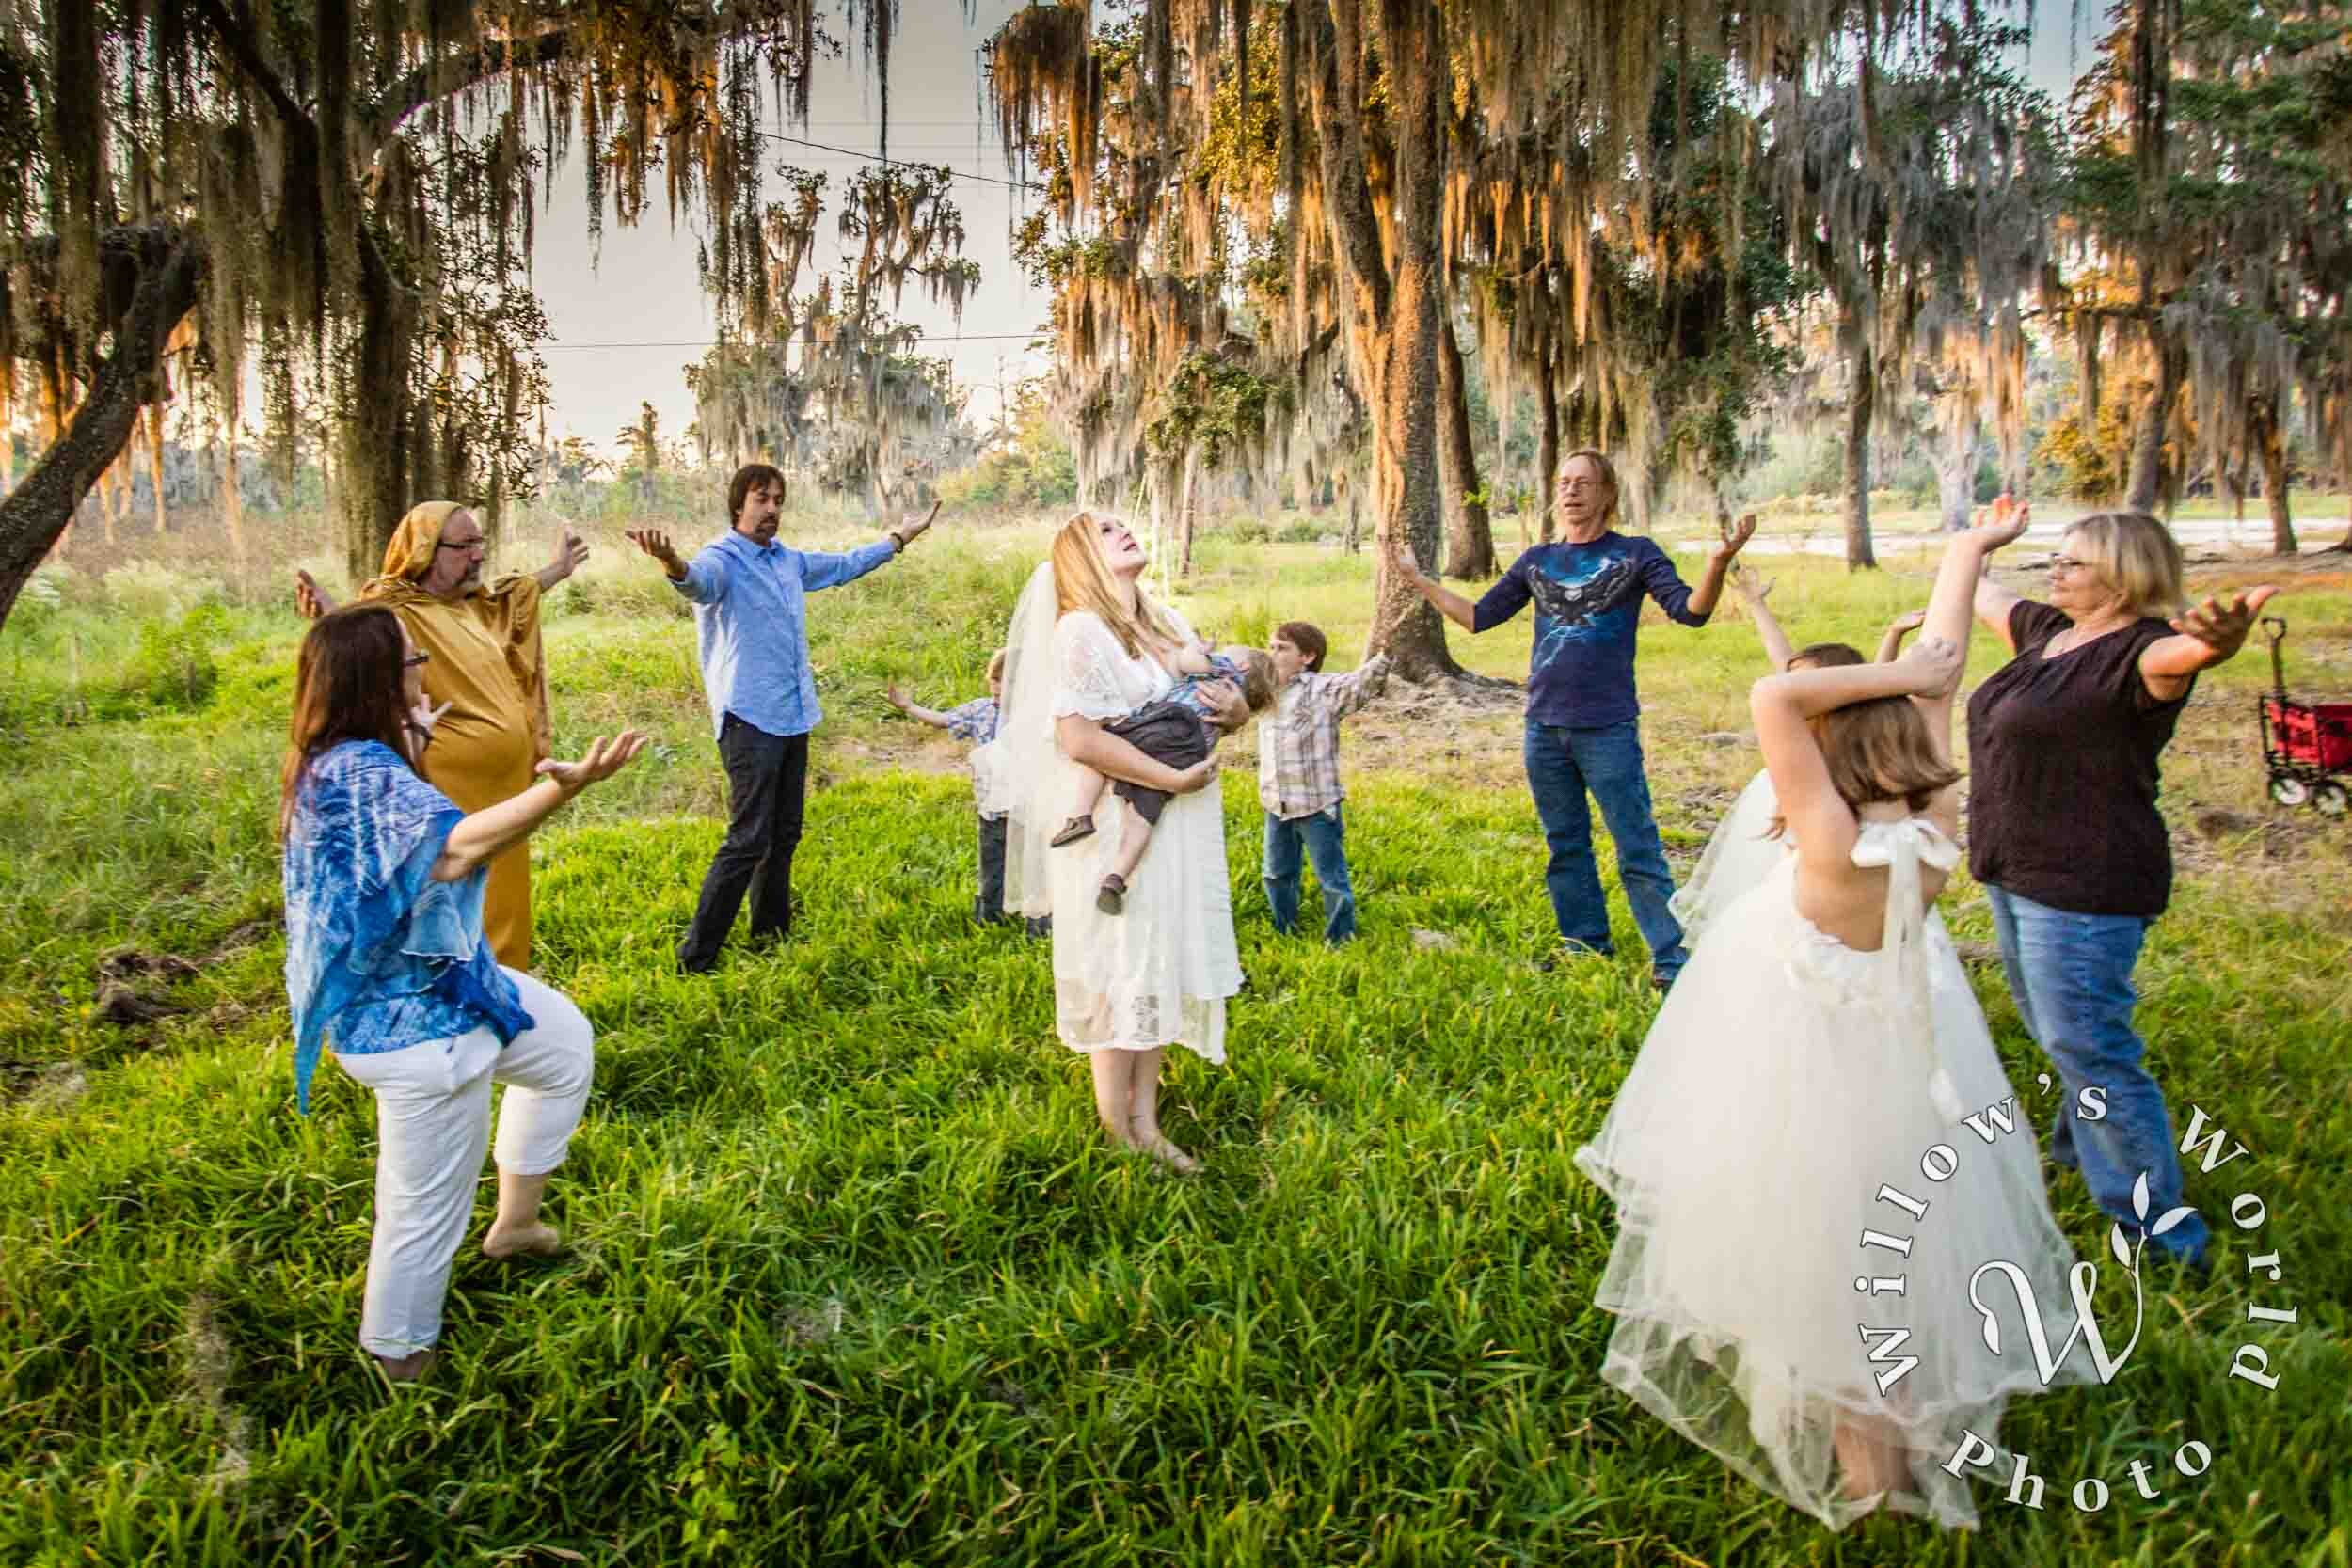 24-Fountainbleu-State-Park-Outdoor-New-Orleans-Pagan-Wedding-Ceremony-Willows-World-Photo.jpg